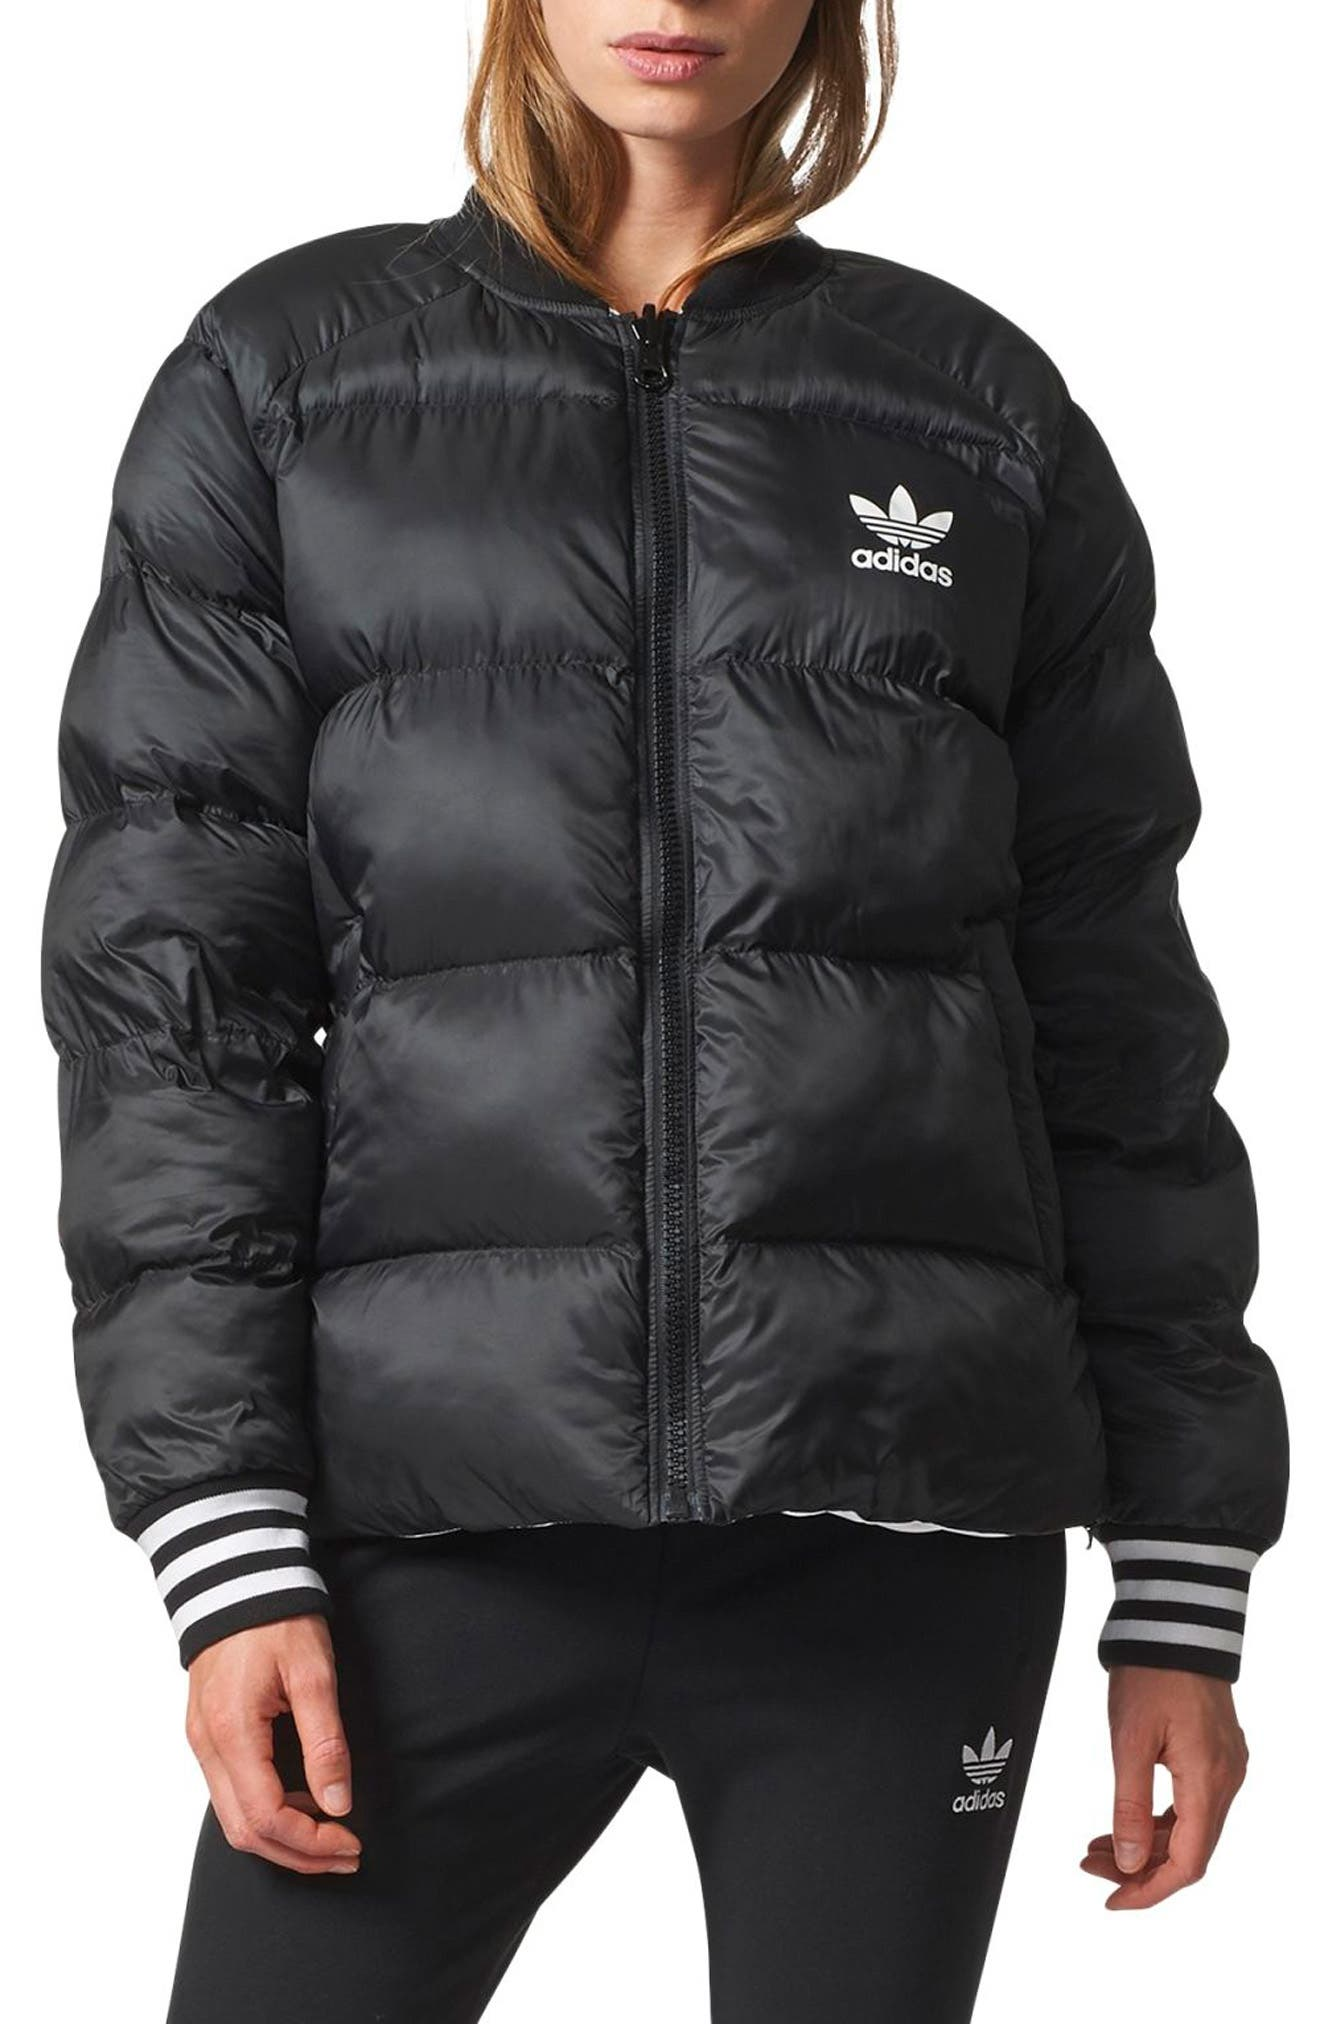 adidas Originals Super Star Reversible Jacket